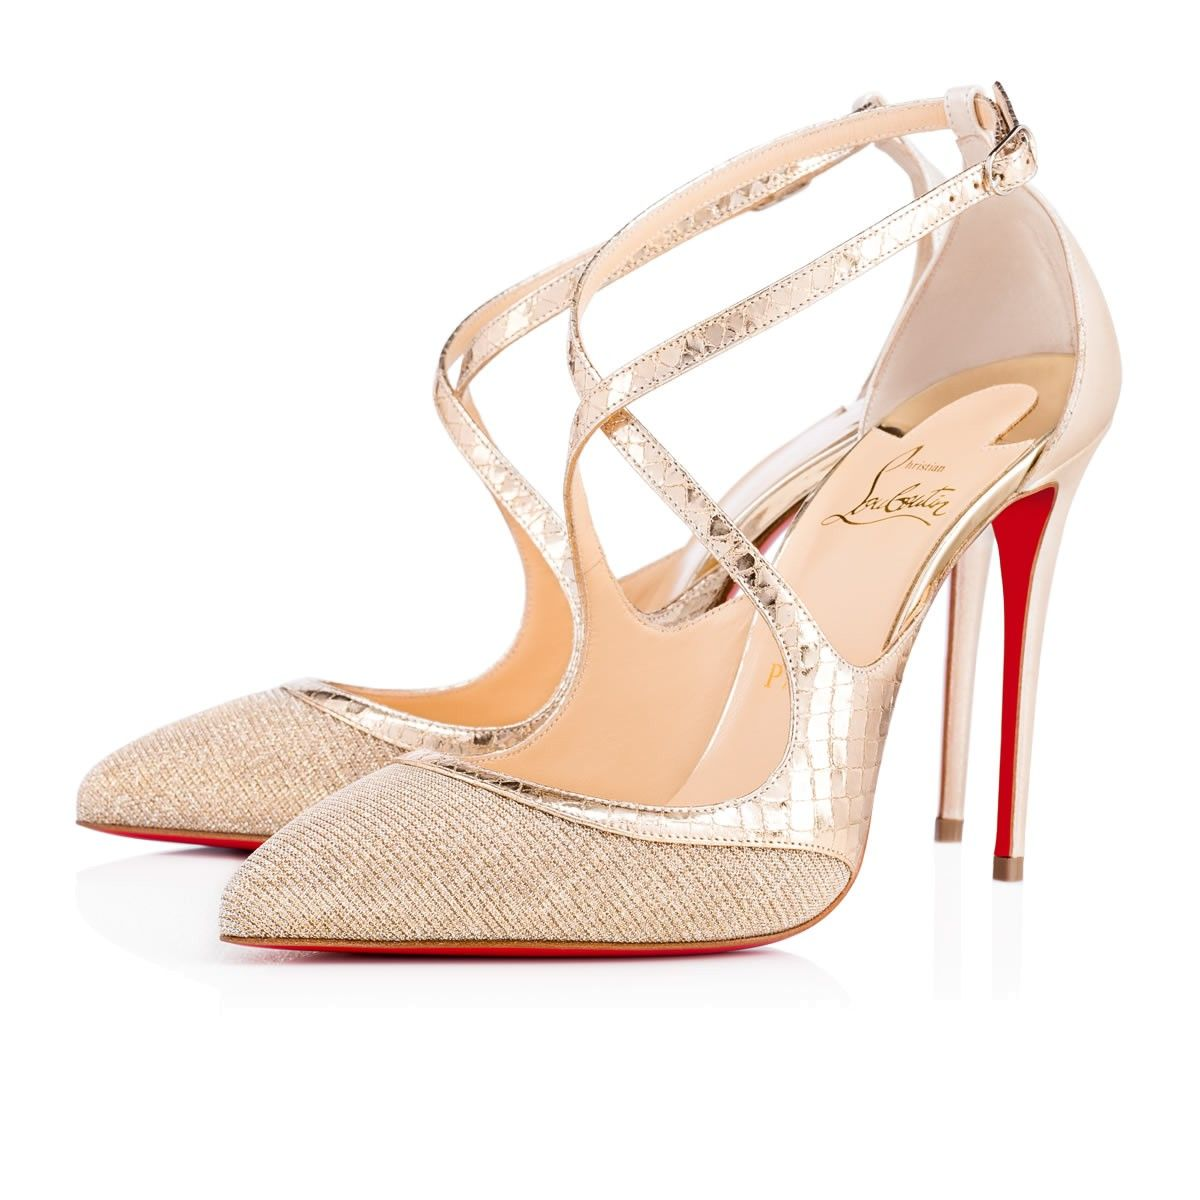 51d58c7282ac Crissos glitter 100 VERSION SILVER Glitter - Women Shoes - Christian  Louboutin